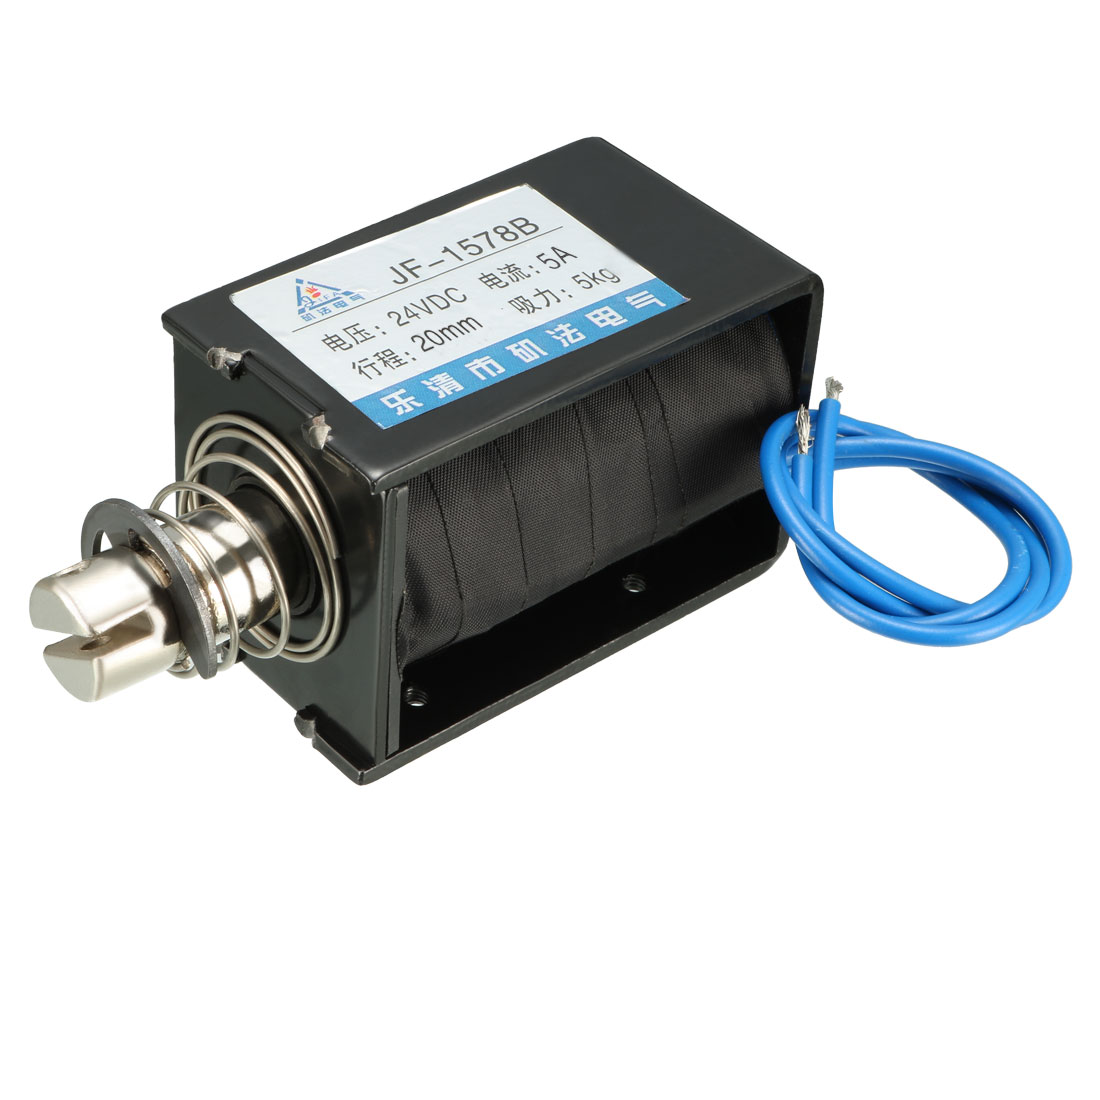 Uxcell JF-1578B DC 24V 5A 5KG 20mm Pull Push Type Open Frame Linear Motion Solenoid Electromagnet